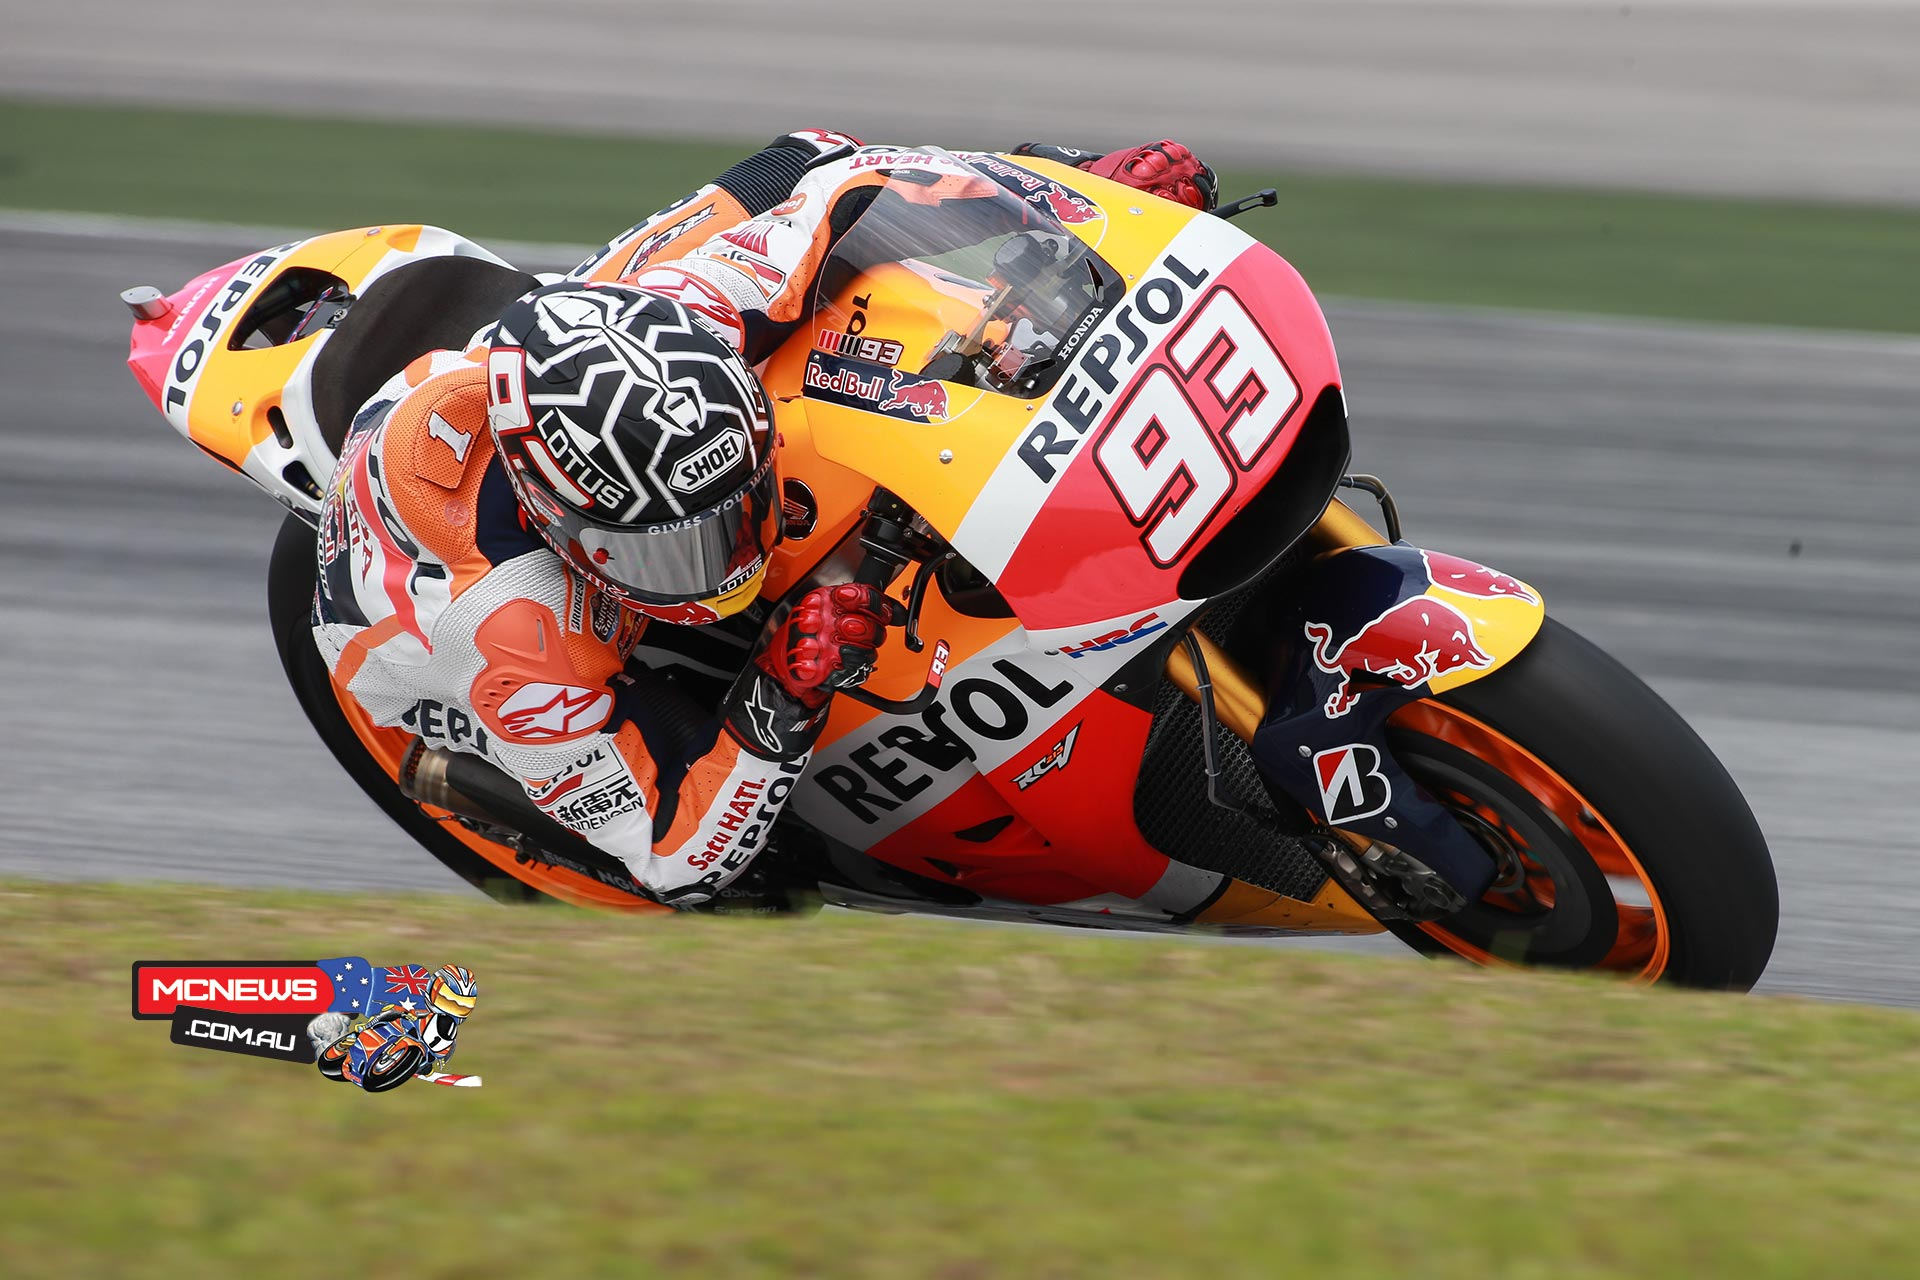 "Marc Marquez - 1ST 1'58.867 (52 LAPS) - ""The truth is that when I saw the time I was surprised, just like everyone else! In any case, I must say that today the track was fast, as we all rode faster than before. I'm glad I was able to set a good lap, but more important is the fact that I felt very comfortable, right from the start. We did a race simulation later on, which also went very well and was perhaps even more important than a single lap. During the race simulation we tested different mapping and in every part we tried different things. The positive is that with the new bike we are already at the same level as in 2014, and there is still plenty of room for improvement. Now I can't wait for the second test and to see what progress we can make."""